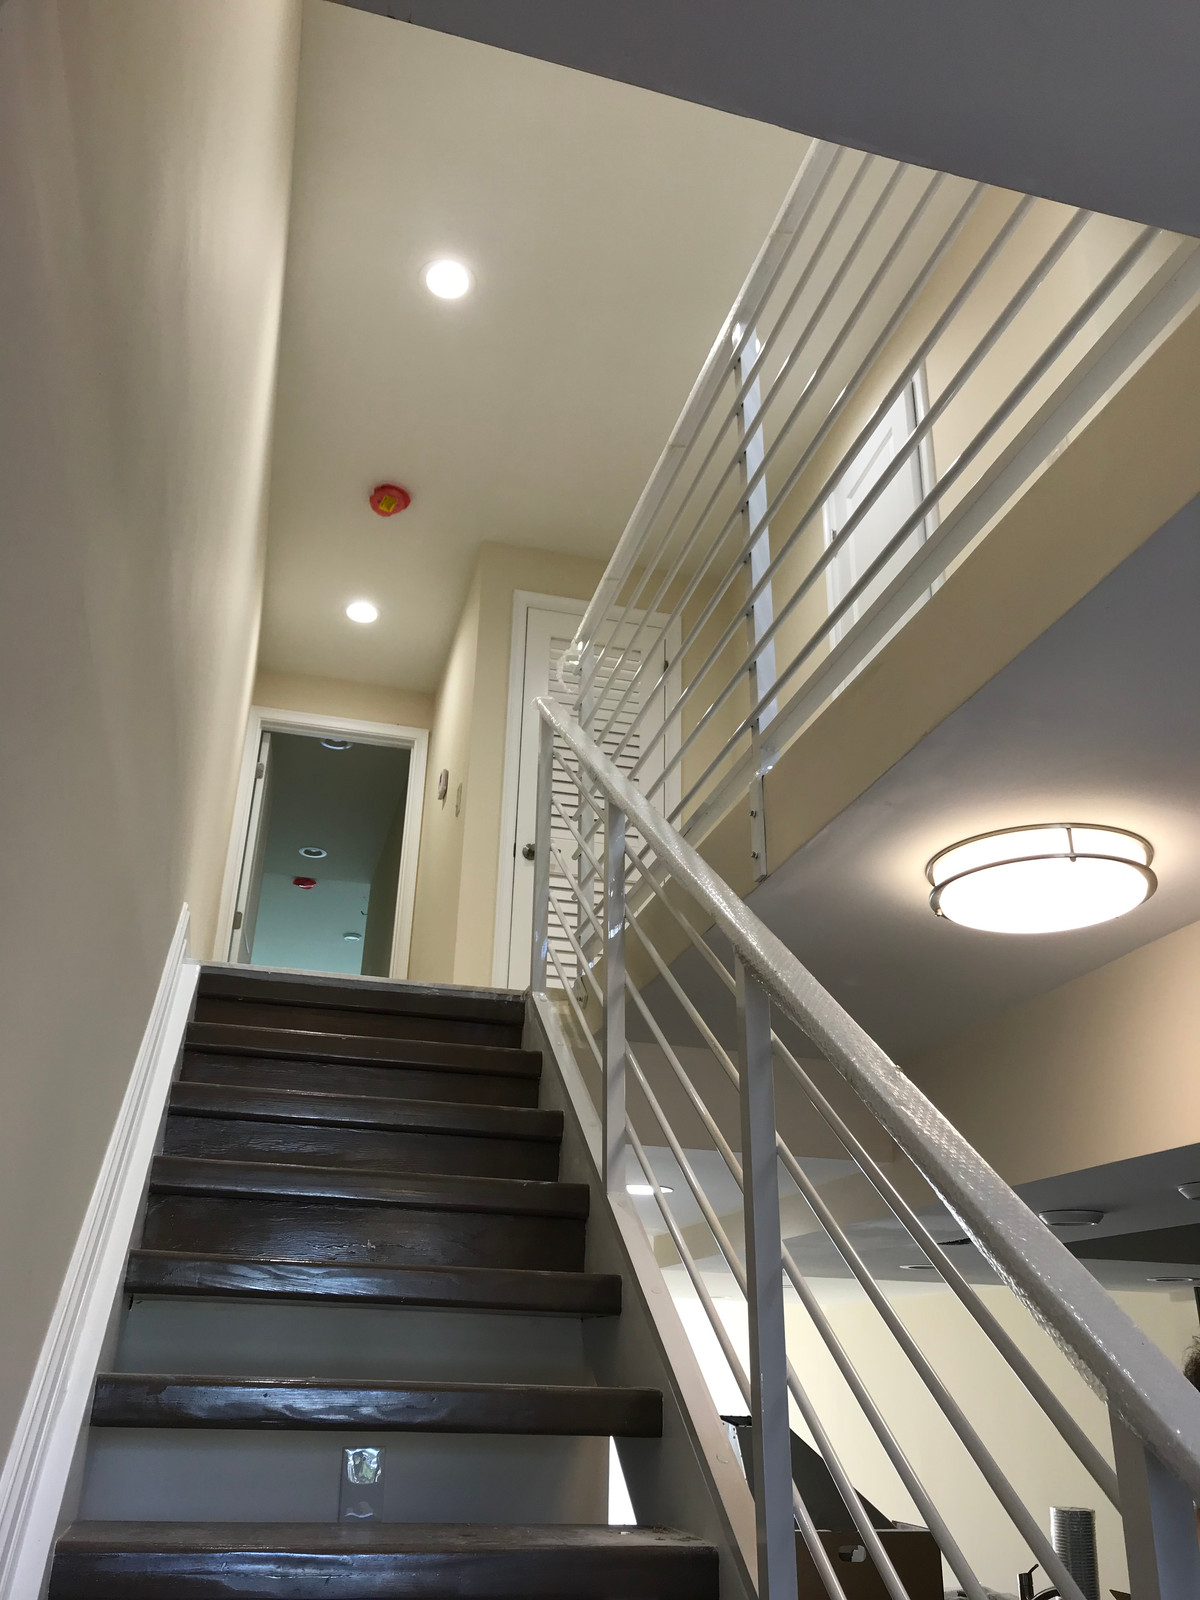 Railing contractor united states modern concepts of - Interior stair railing contractors ...